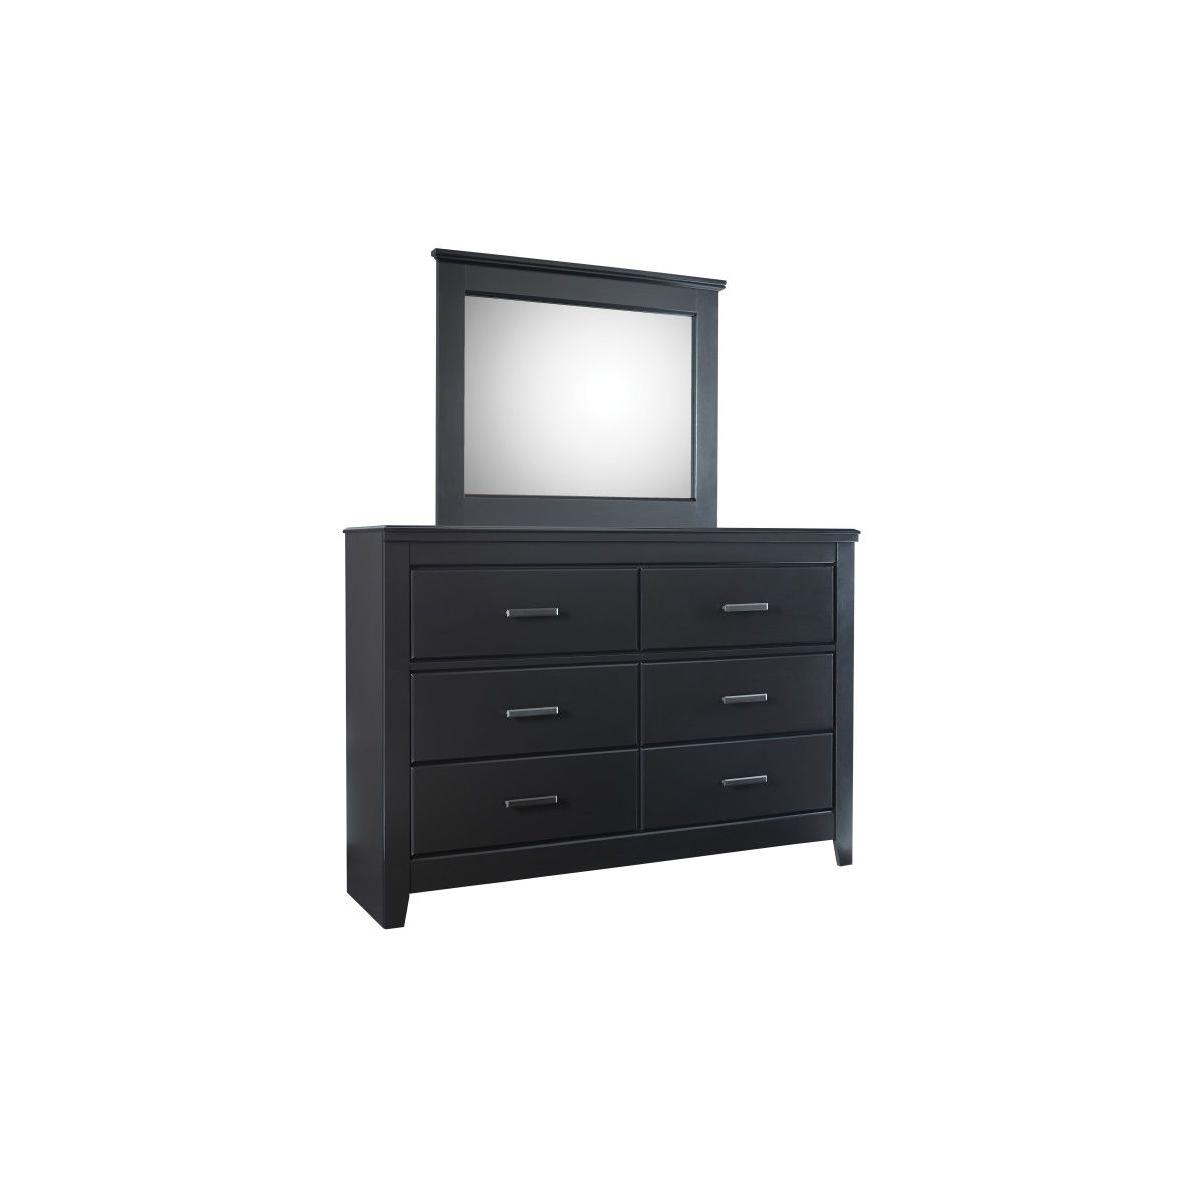 Modesto 6 Drawer Dresser, Black